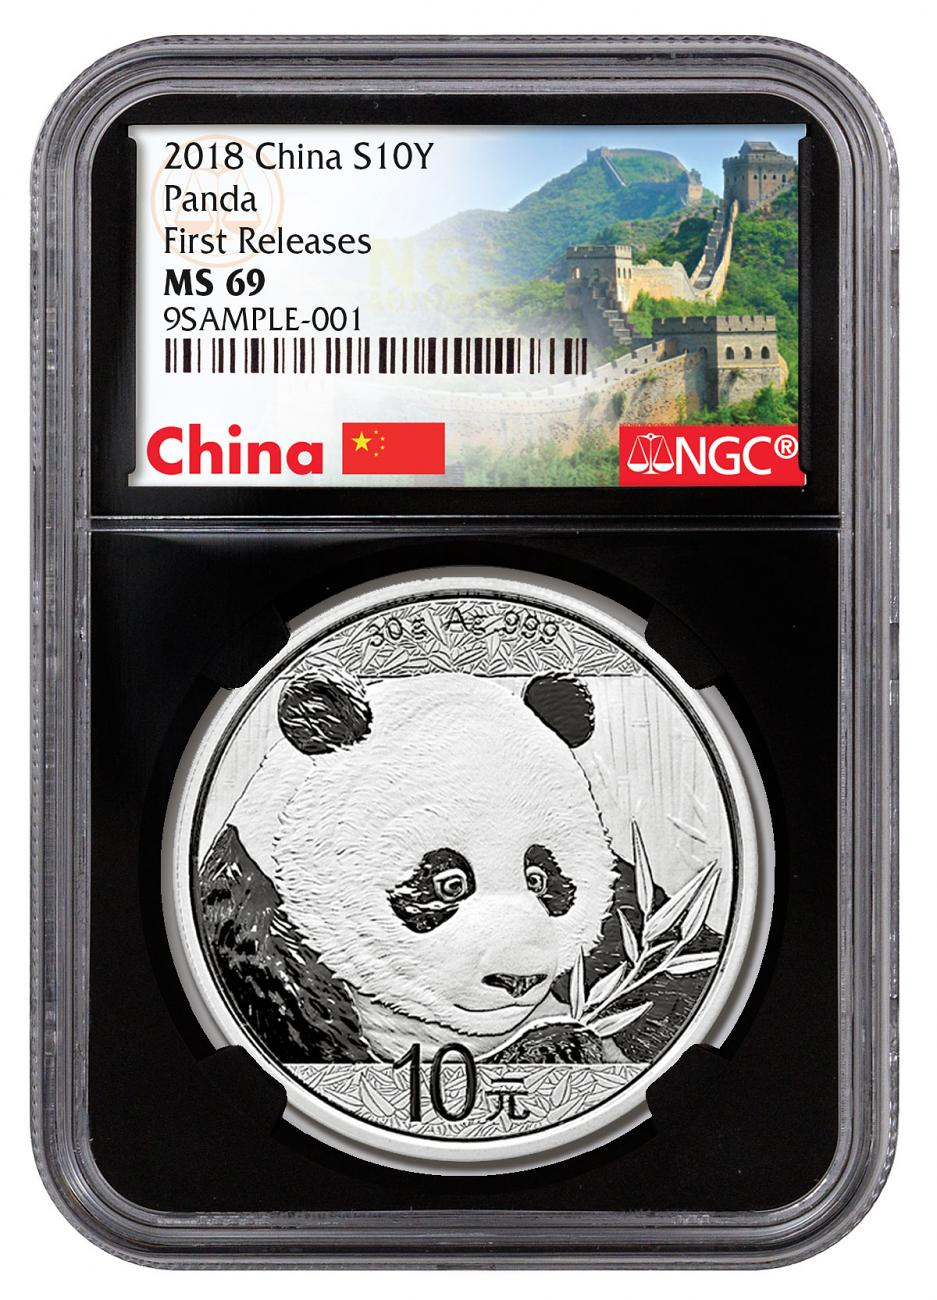 2018 China 30 g Silver Panda - 35th Anniversary ¥10 Coin NGC MS69 FR Black Core Holder Exclusive Great Wall Label